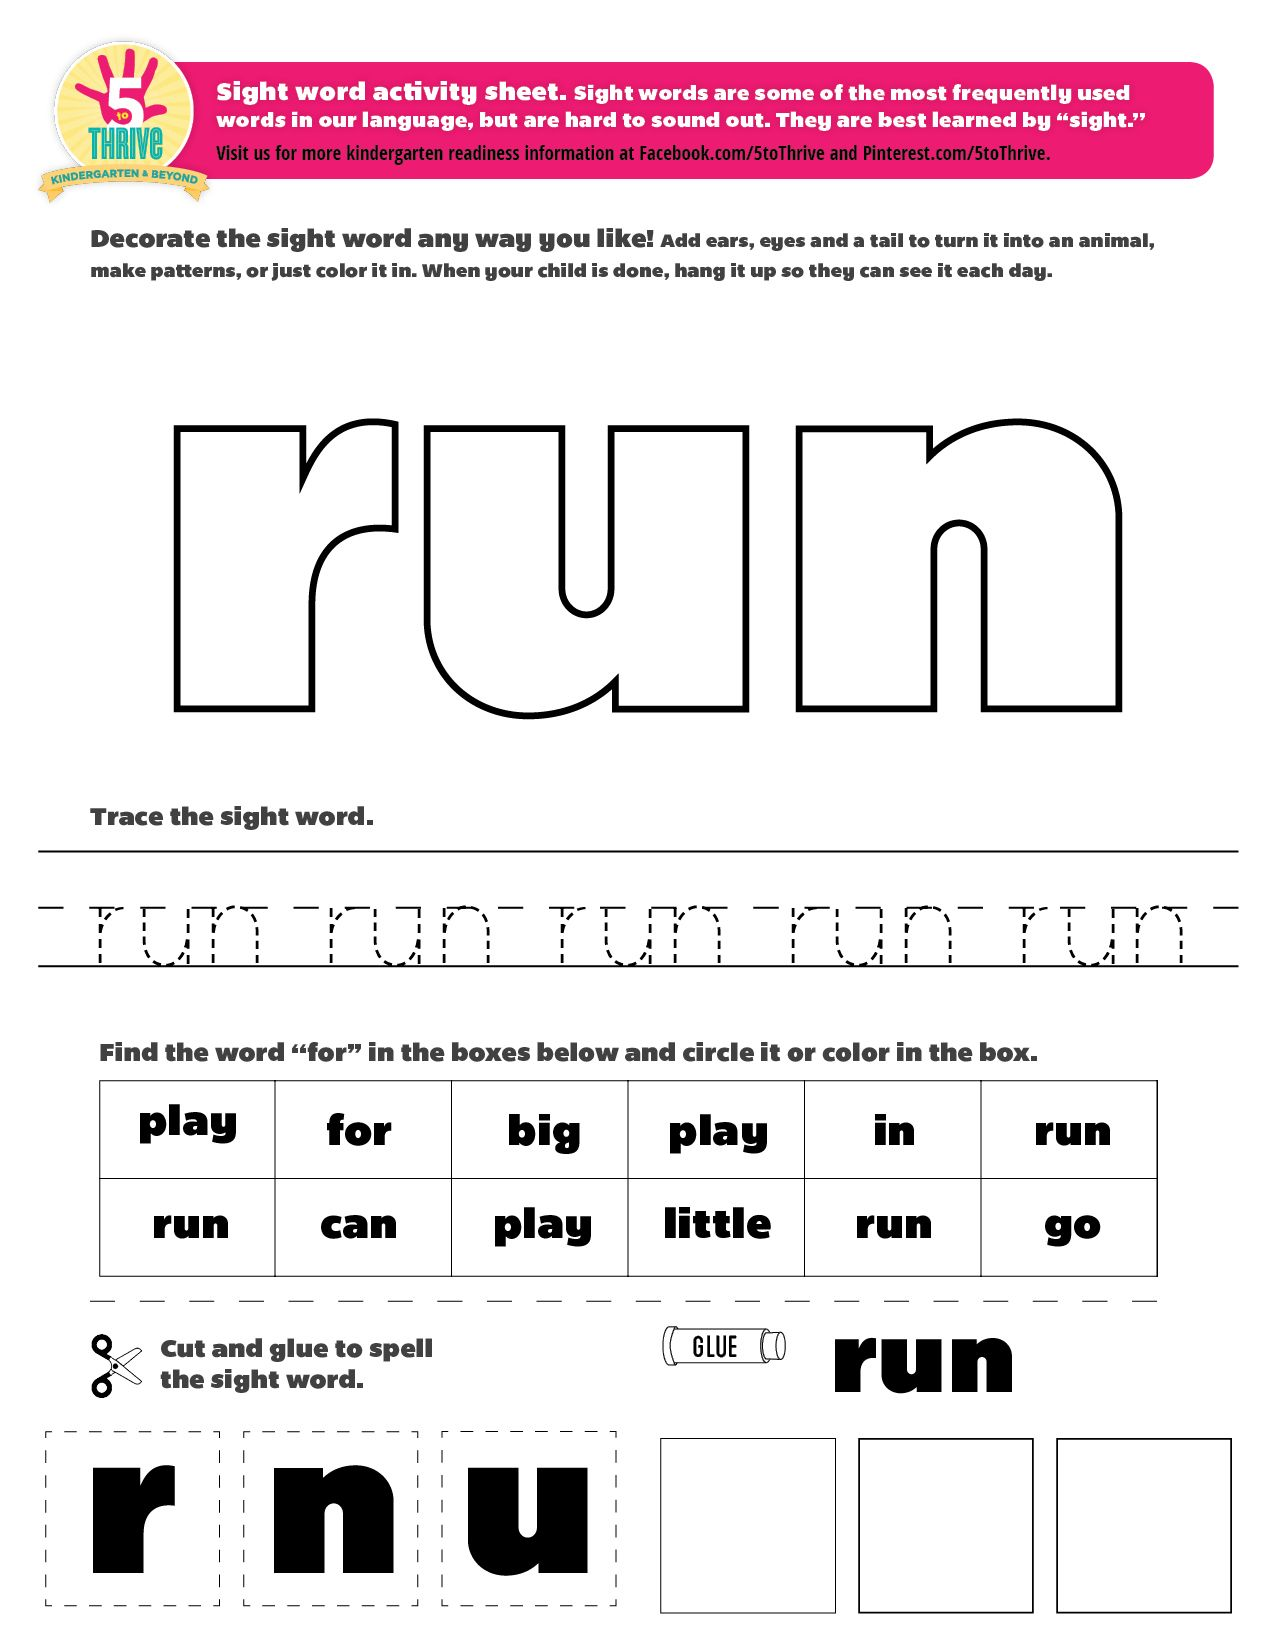 The Sight Word This Week Is Run Sight Words Are Some Of The Most Frequently Used Words In Our